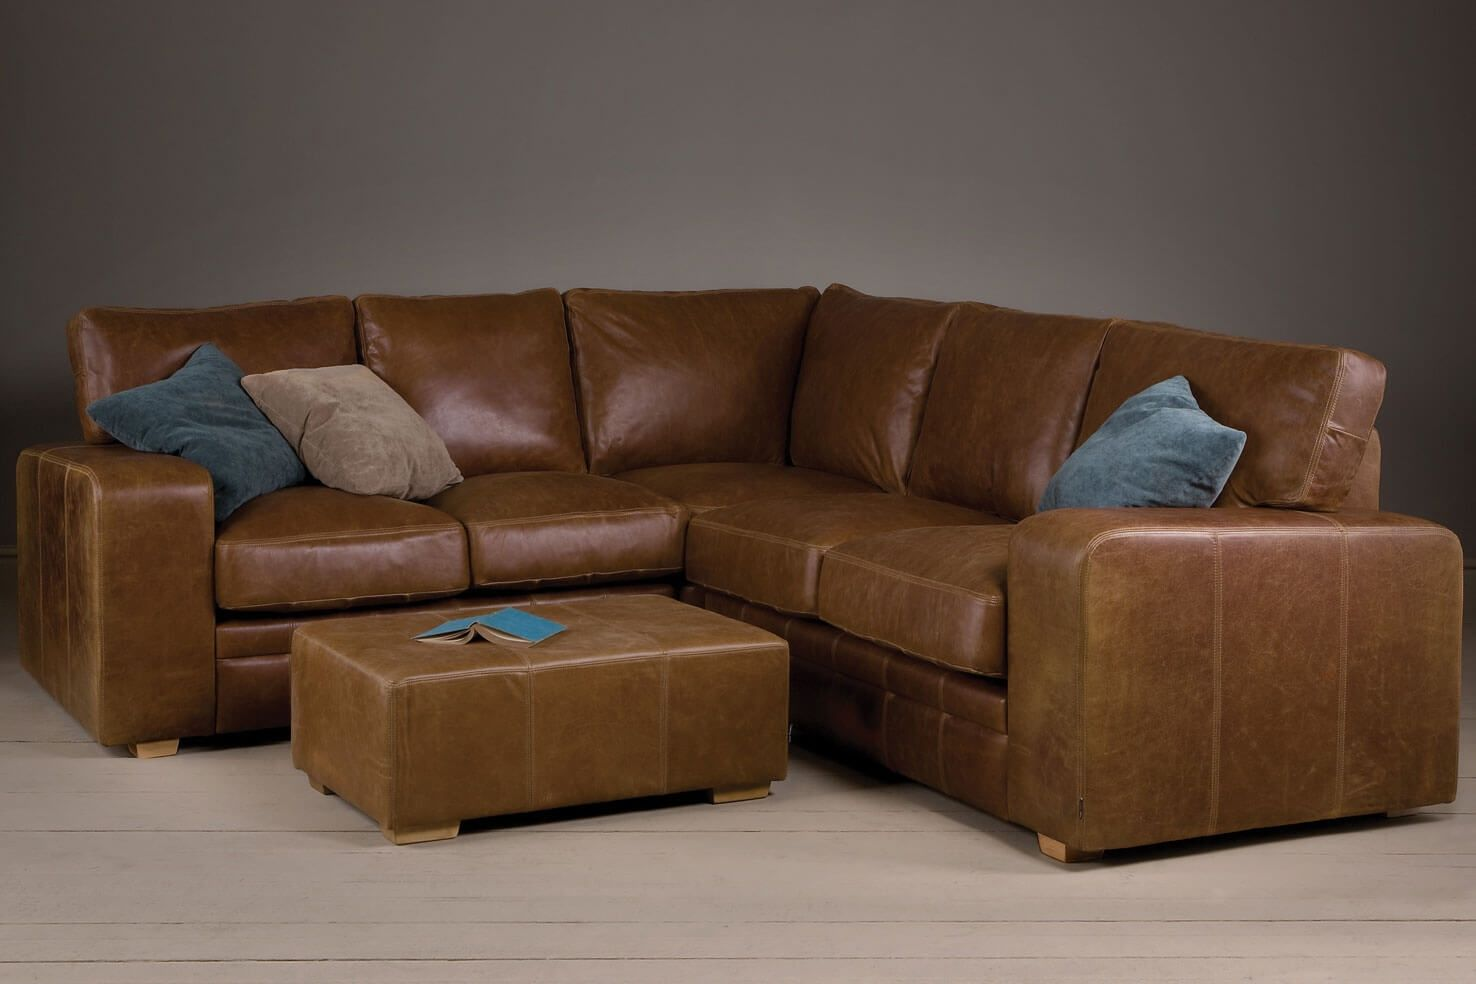 The Broad Arm Leather Corner Sofa by Indigo Furniture